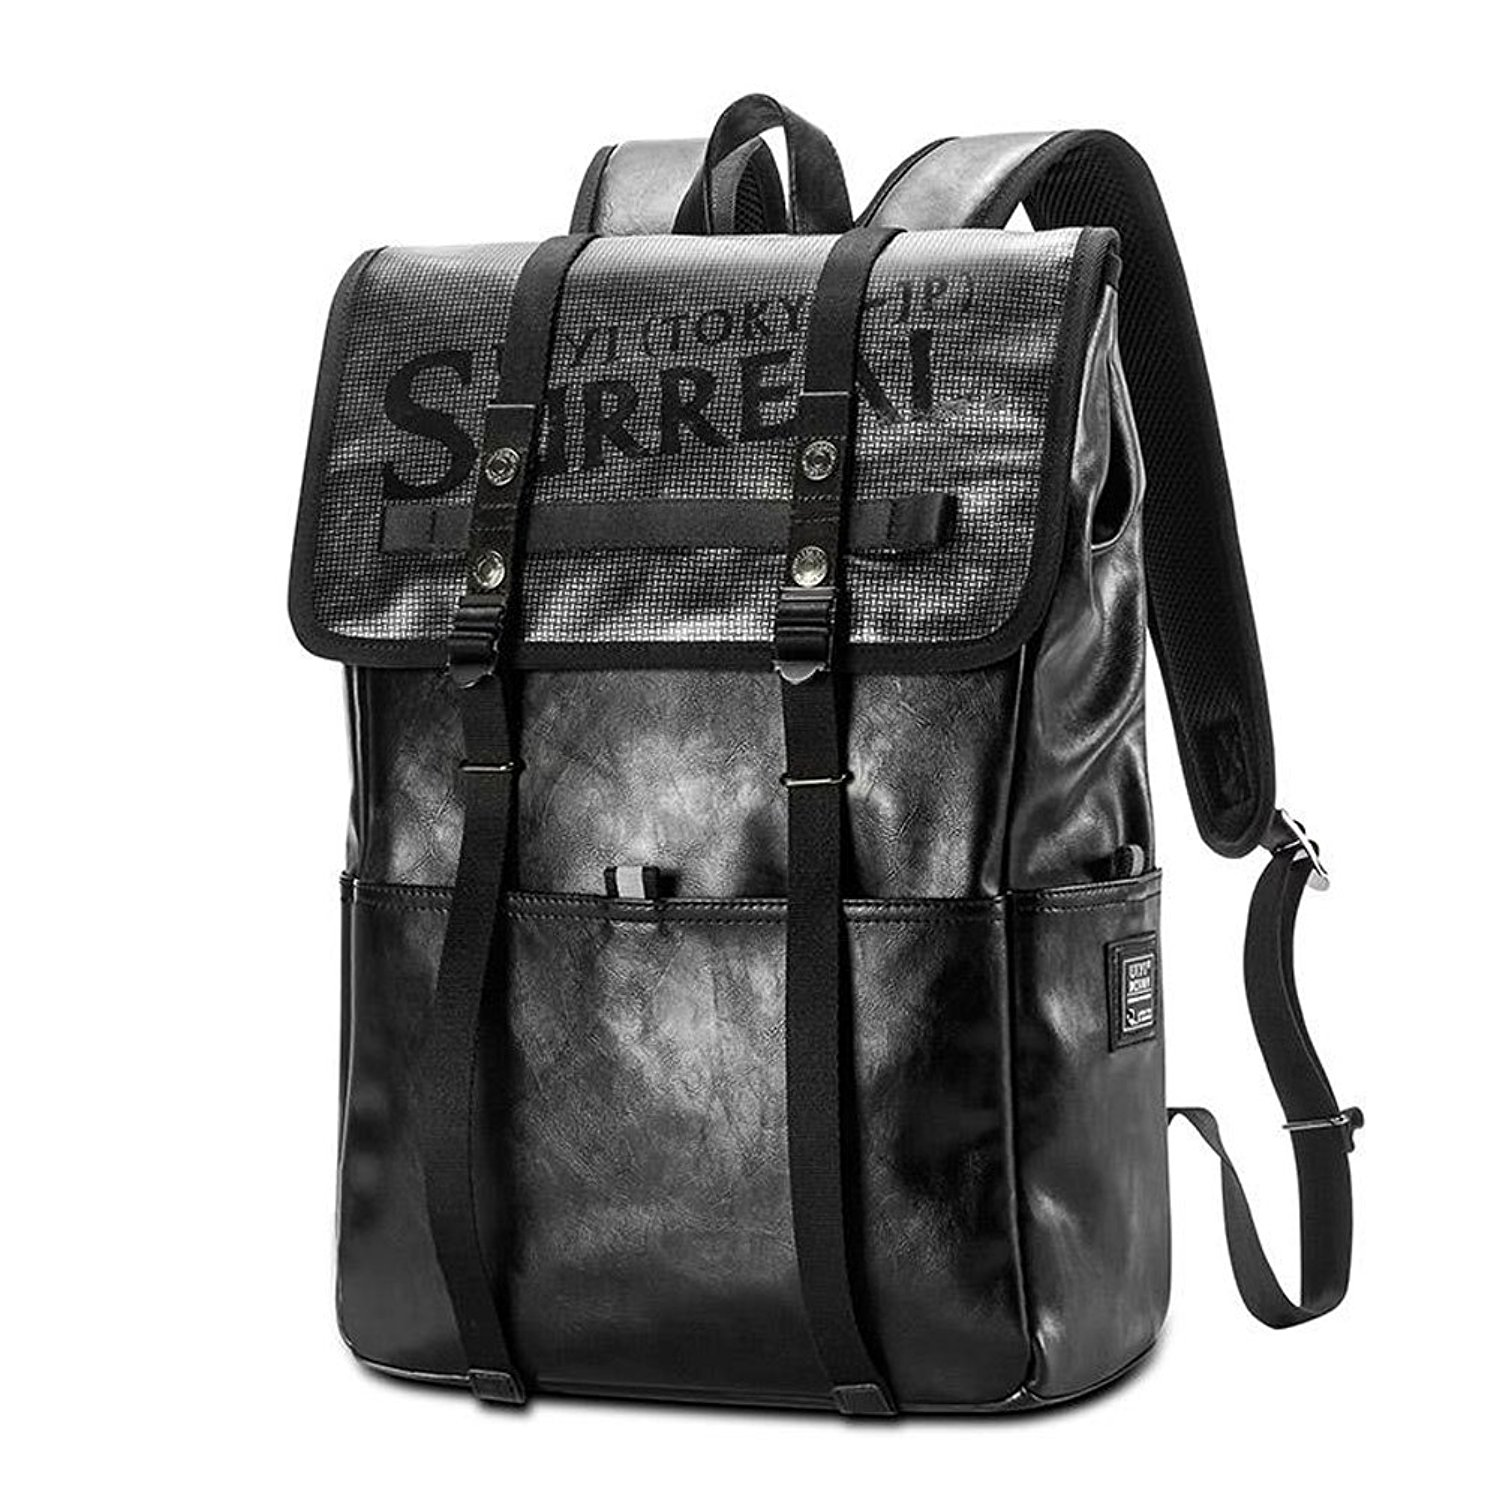 68bb6e47f1 Get Quotations · UIYI Mens Leather Shoulder Basic Backpack 14 Inch  Knapsacks Outdoor Bag 160231